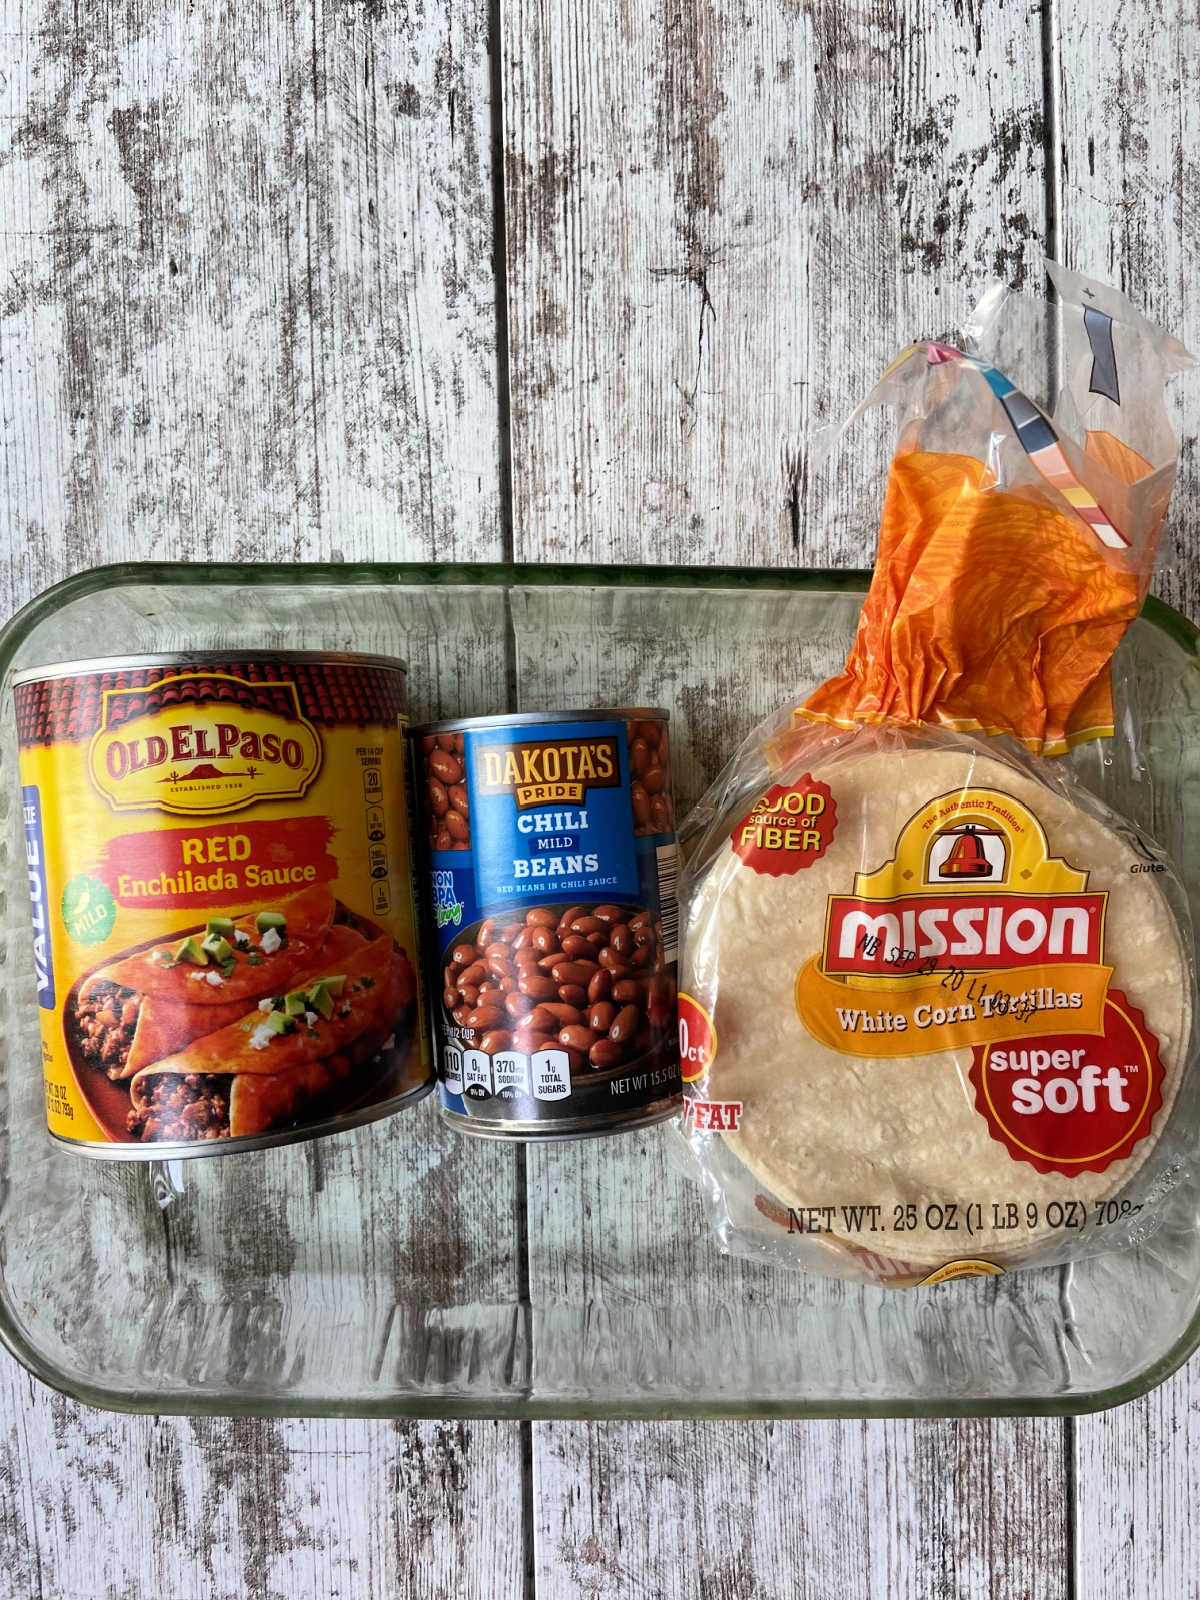 Casserole dish with enchilada sauce, chili beans and corn tortillas in their cans and packages